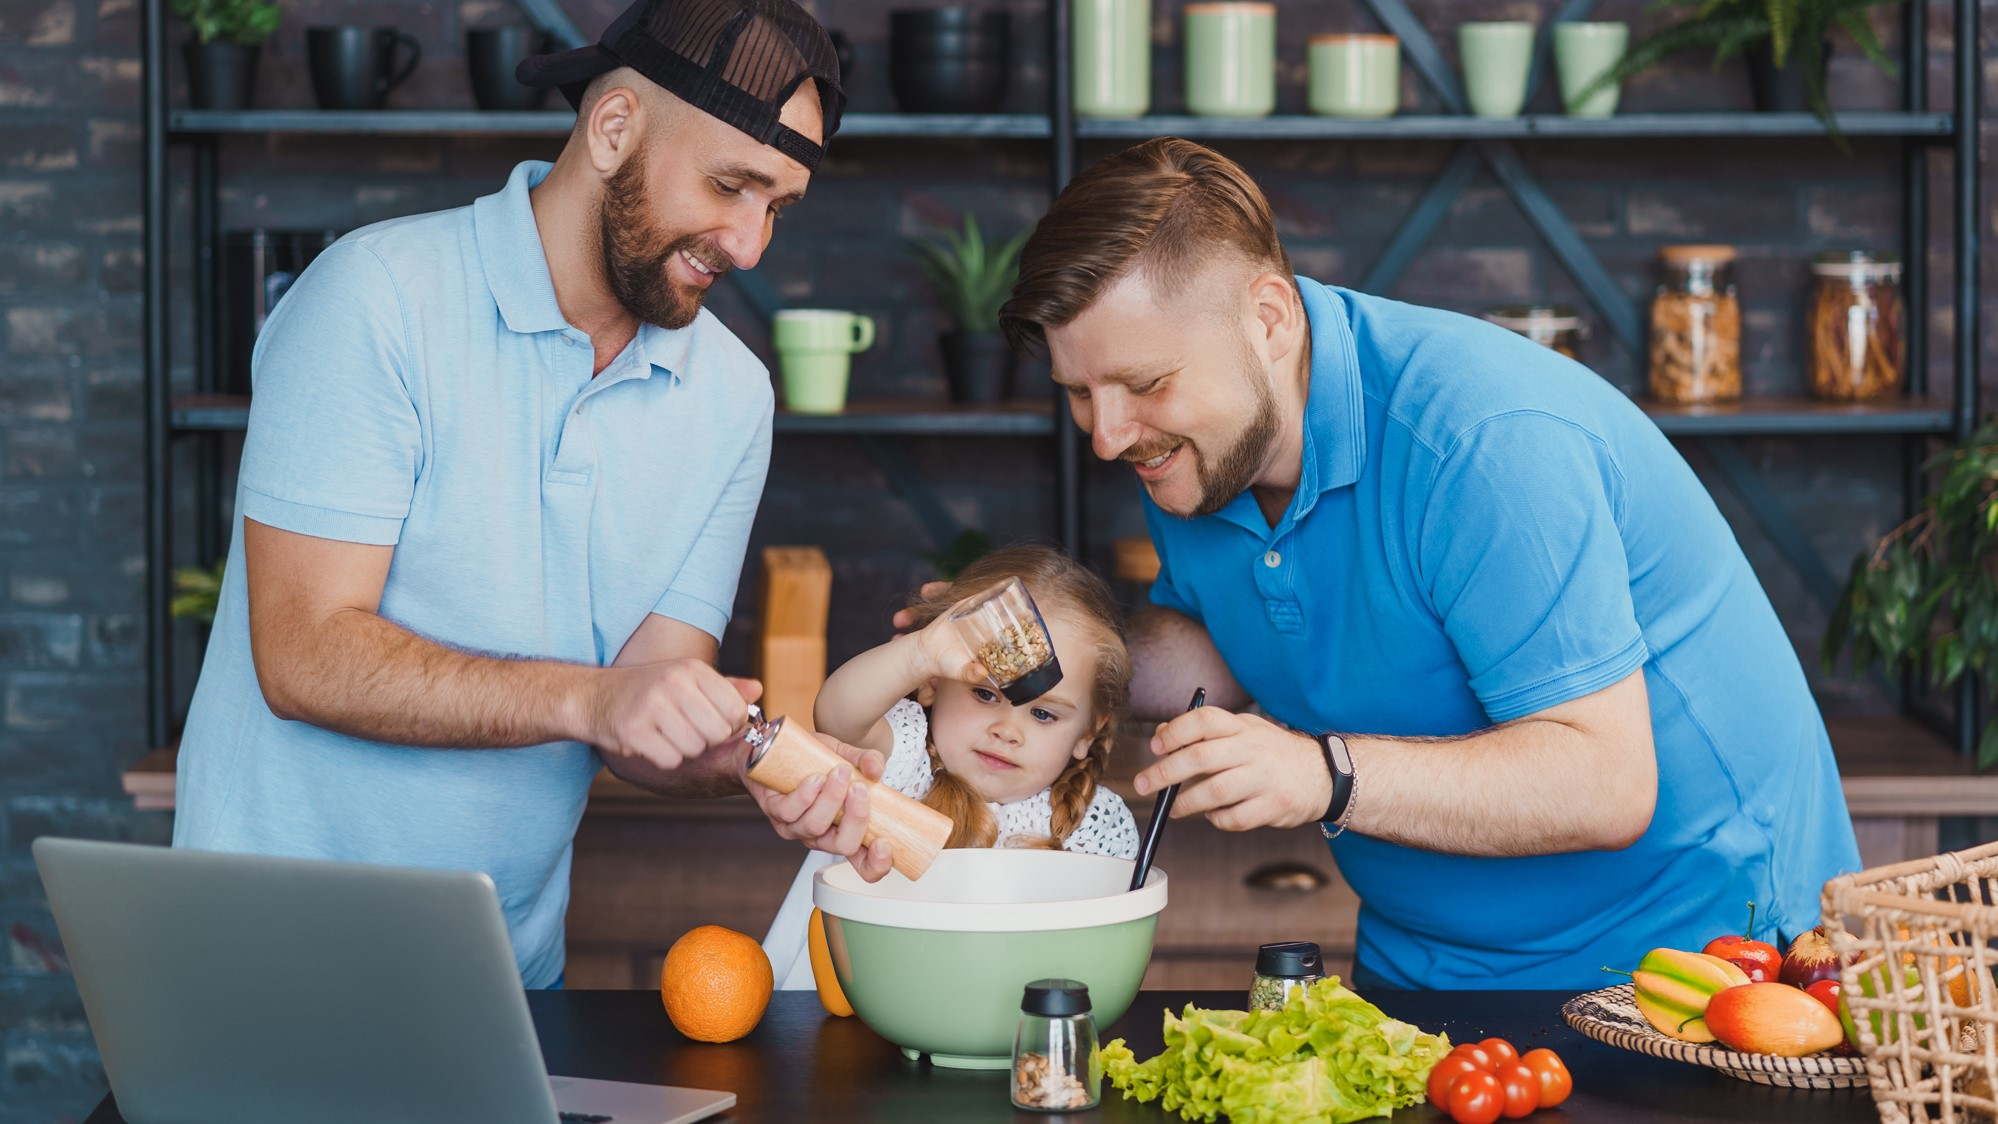 Taking an online cooking class for virtual fathers day